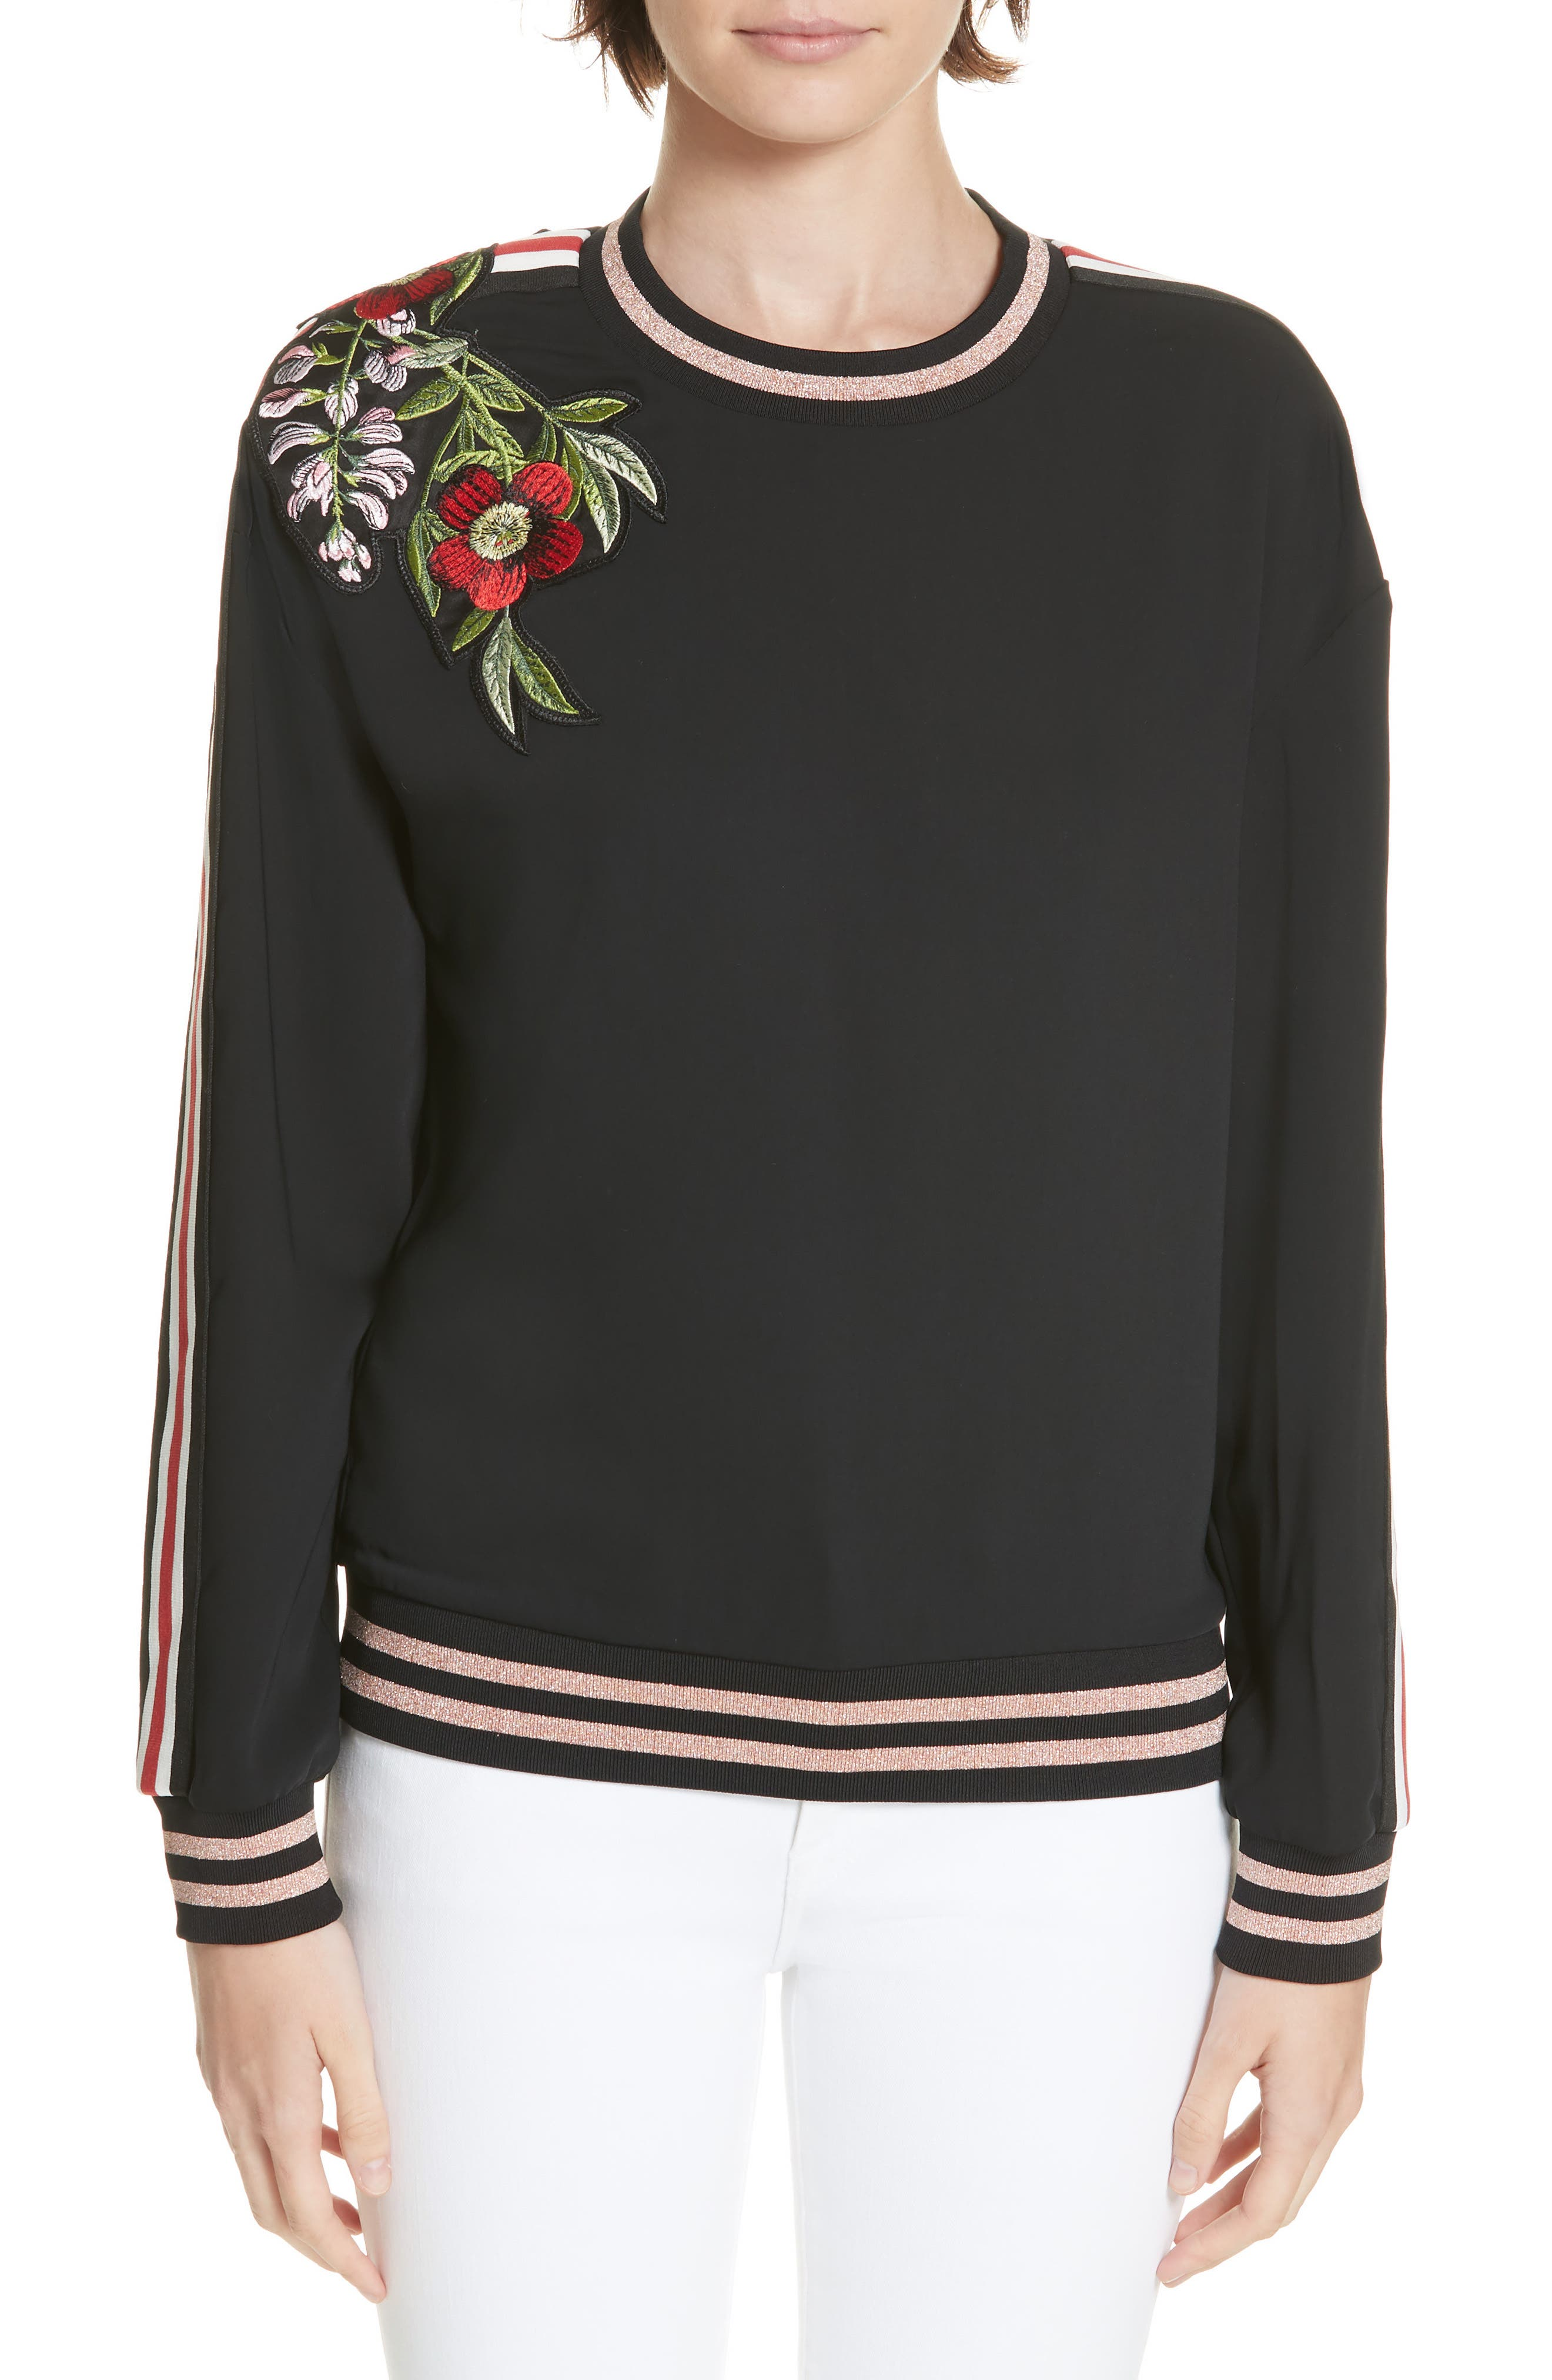 Maddeyy Embroidered Trim Top, Main, color, 001